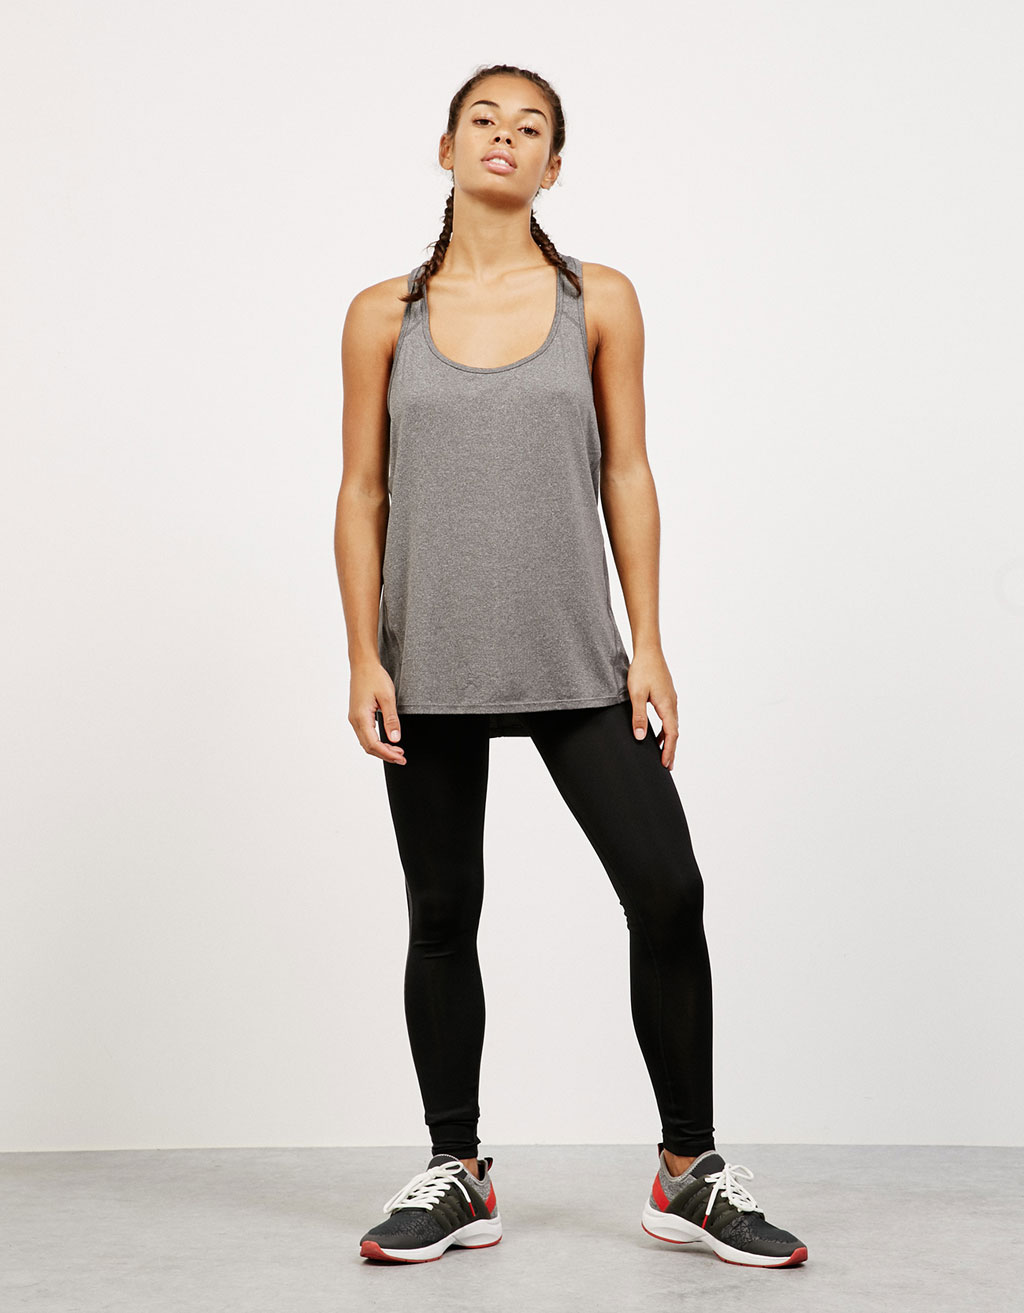 Loose-fitting, racerback technical sports top